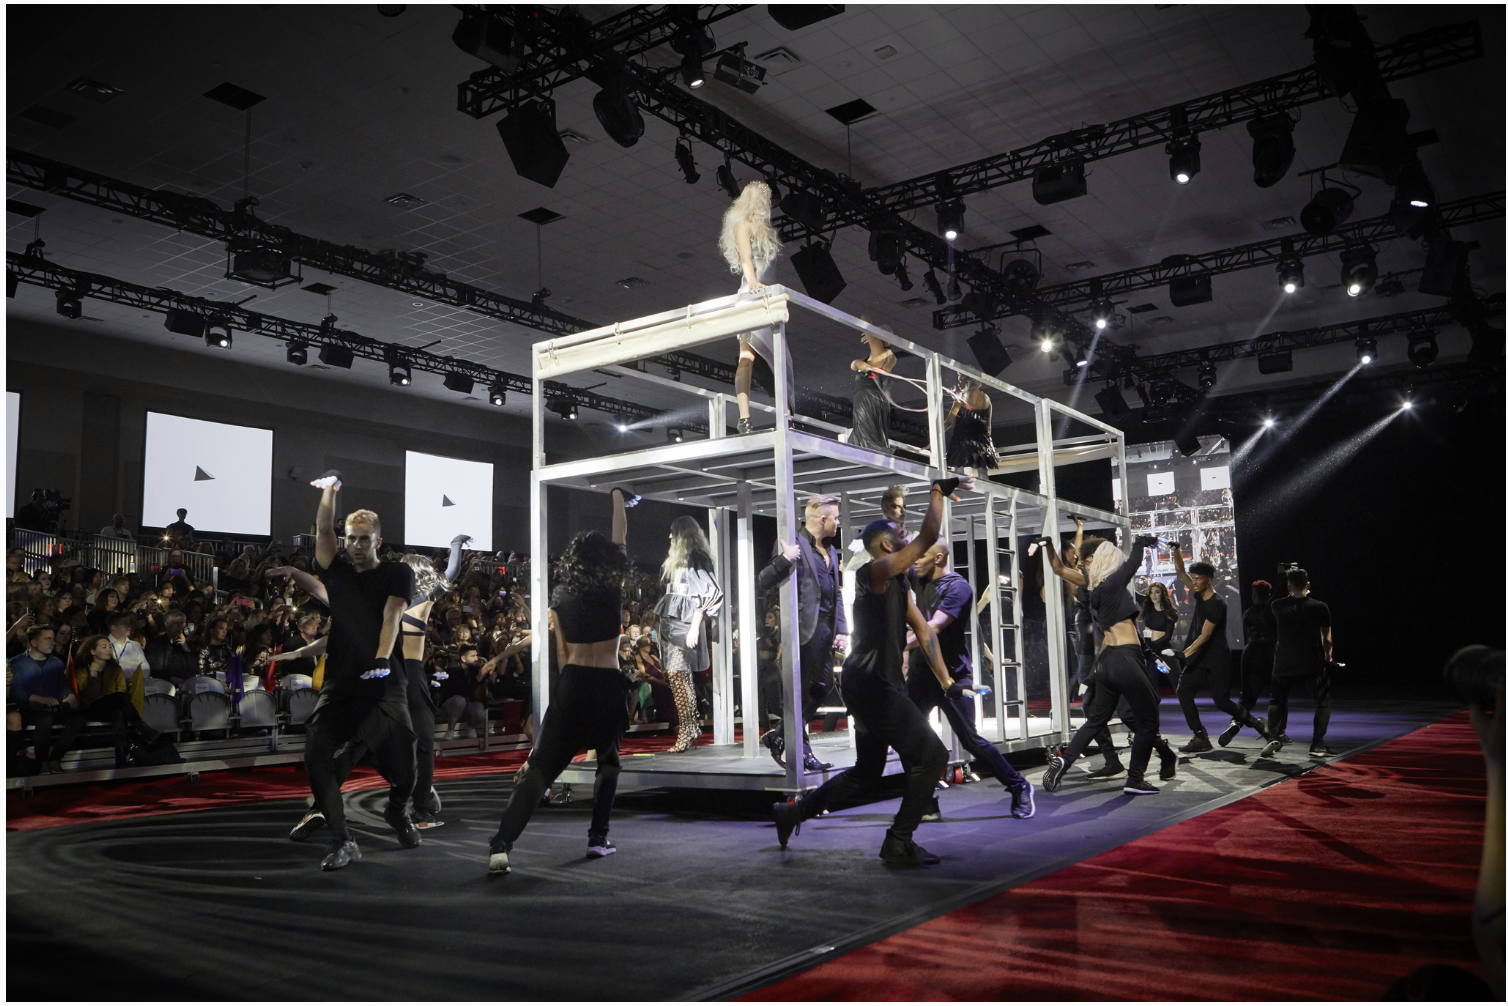 MATRIX - LDJ has been a proud partner of Matrix, a division of L'Oreal for over 12 years. Our partnership has included yearly National Sales Conferences, DESTINATION (a gathering of 3,500-5,000 global hairdressers), SalonCentric touring with Tabitha Coffey, and National and Regional market events.